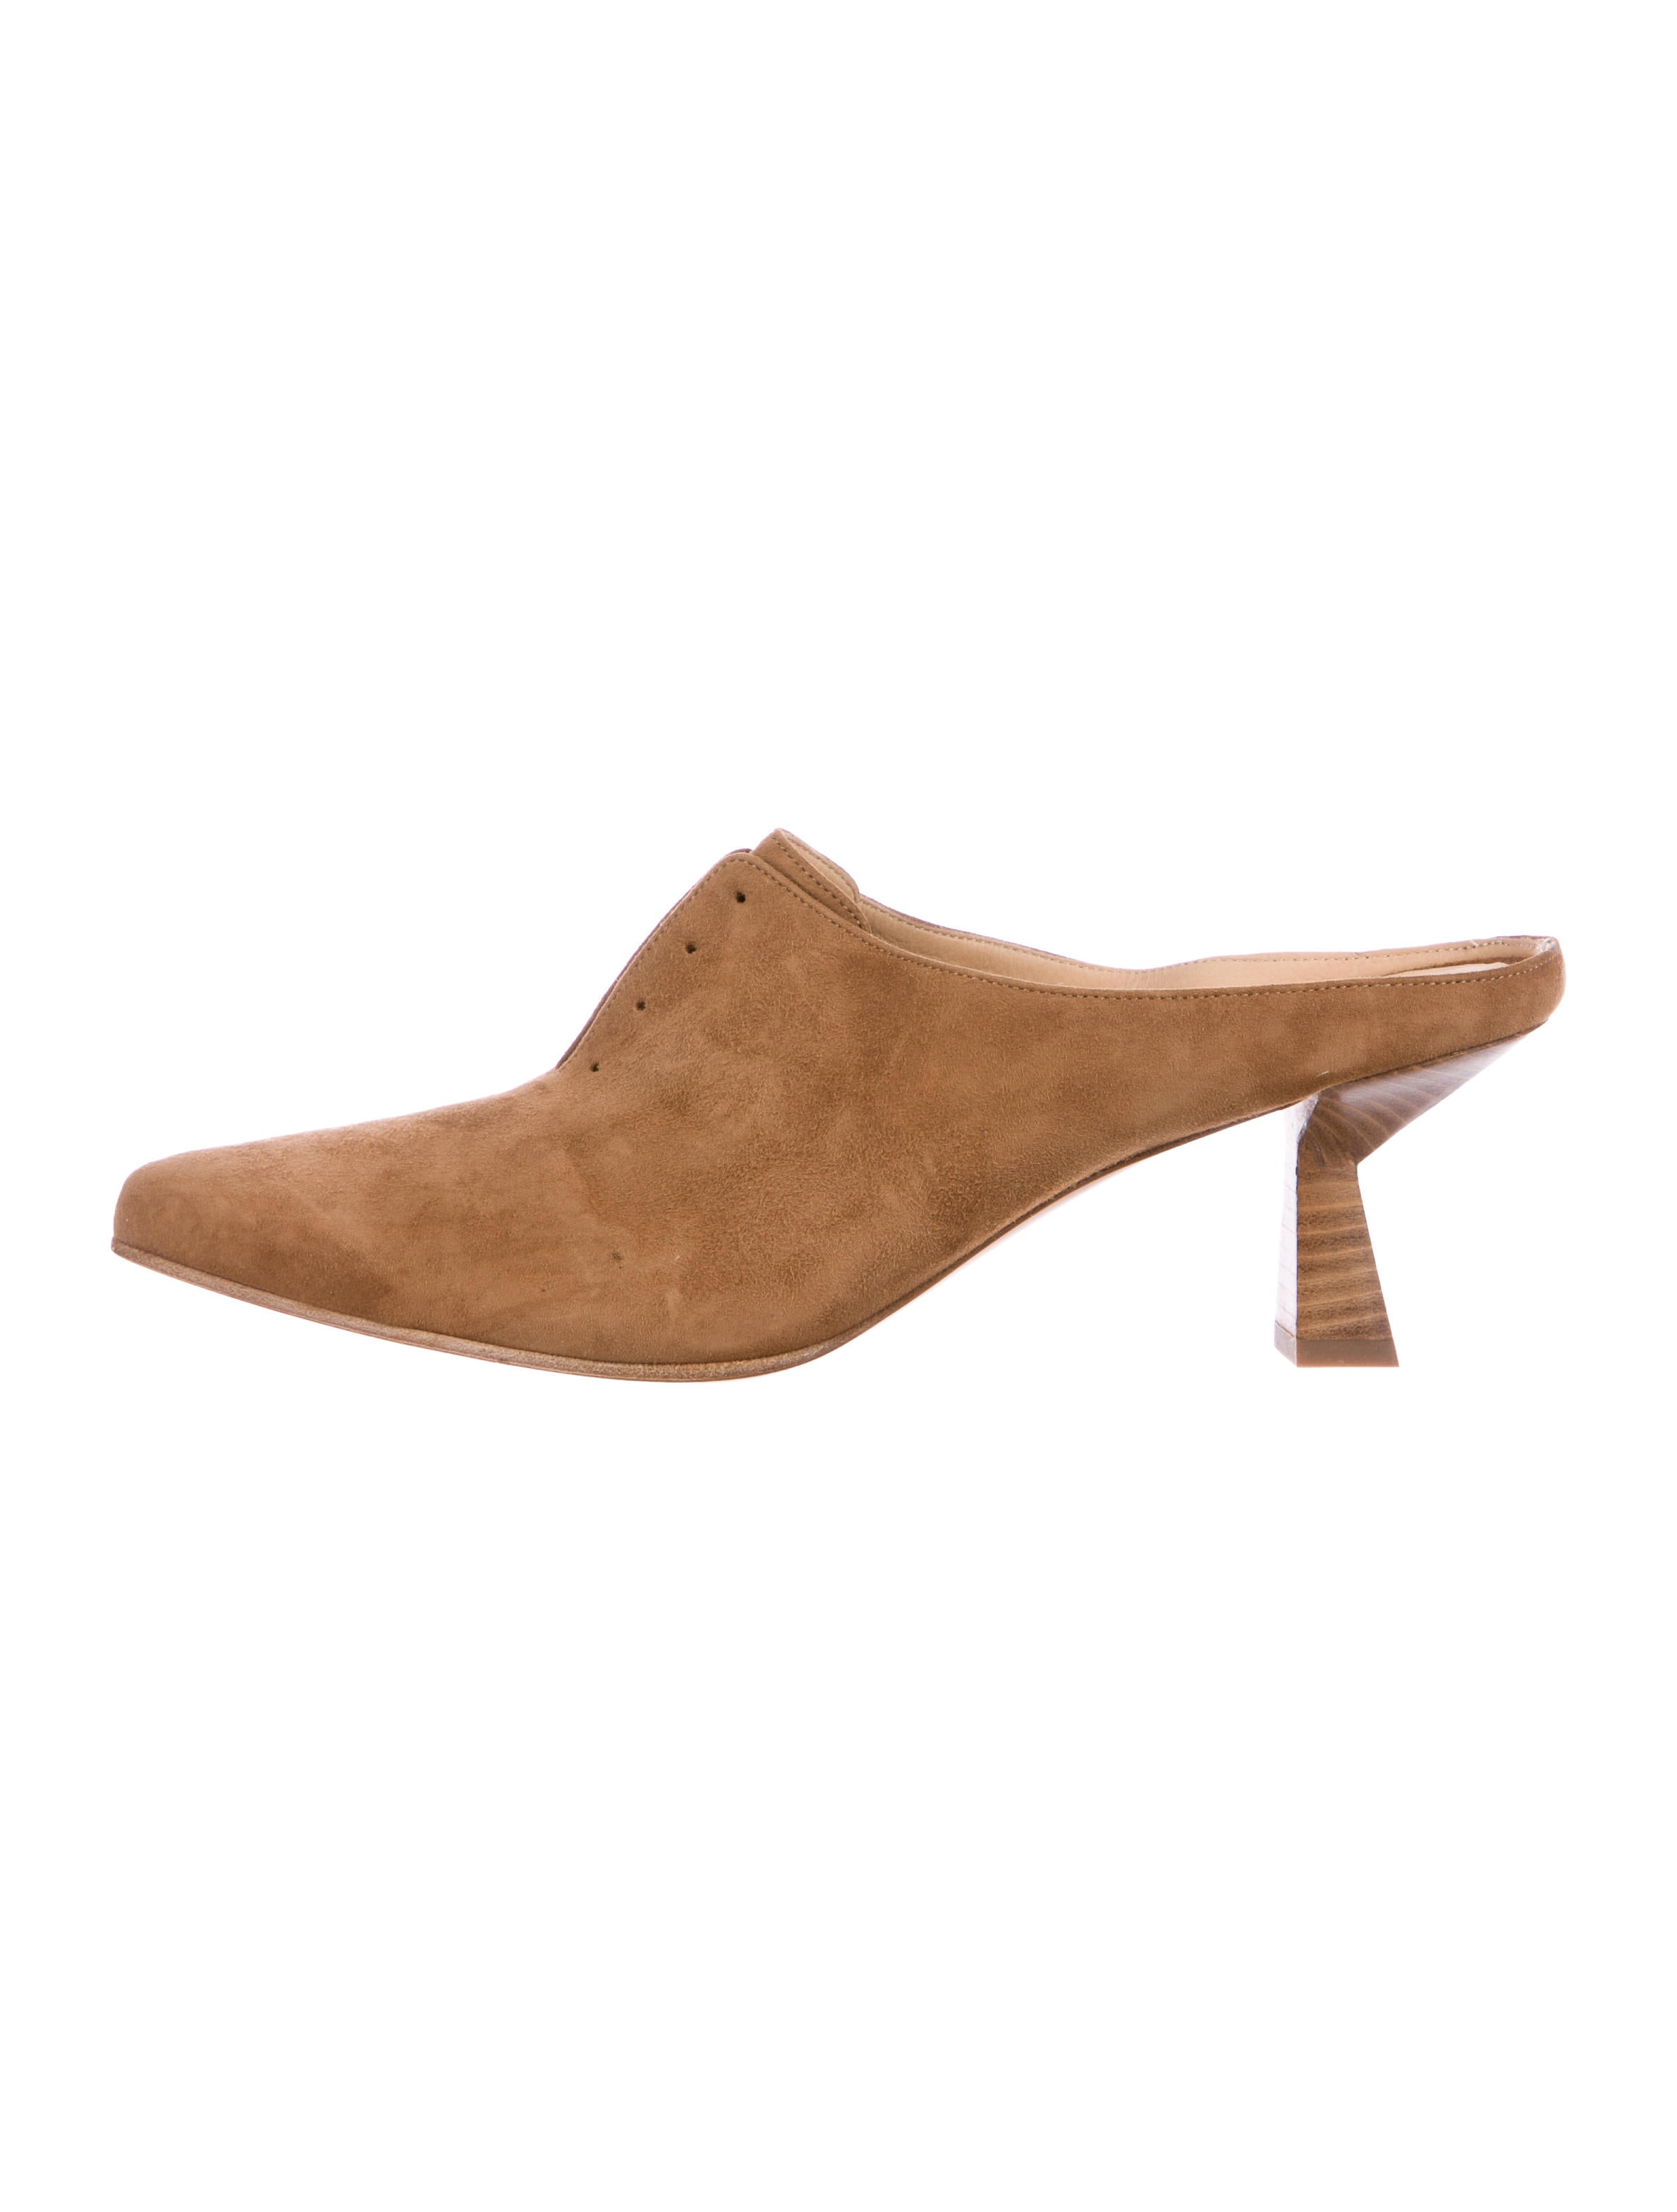 free shipping authentic pay with paypal Gabriela Hearst Suede Antoinette Mules buy online new nzcK5V